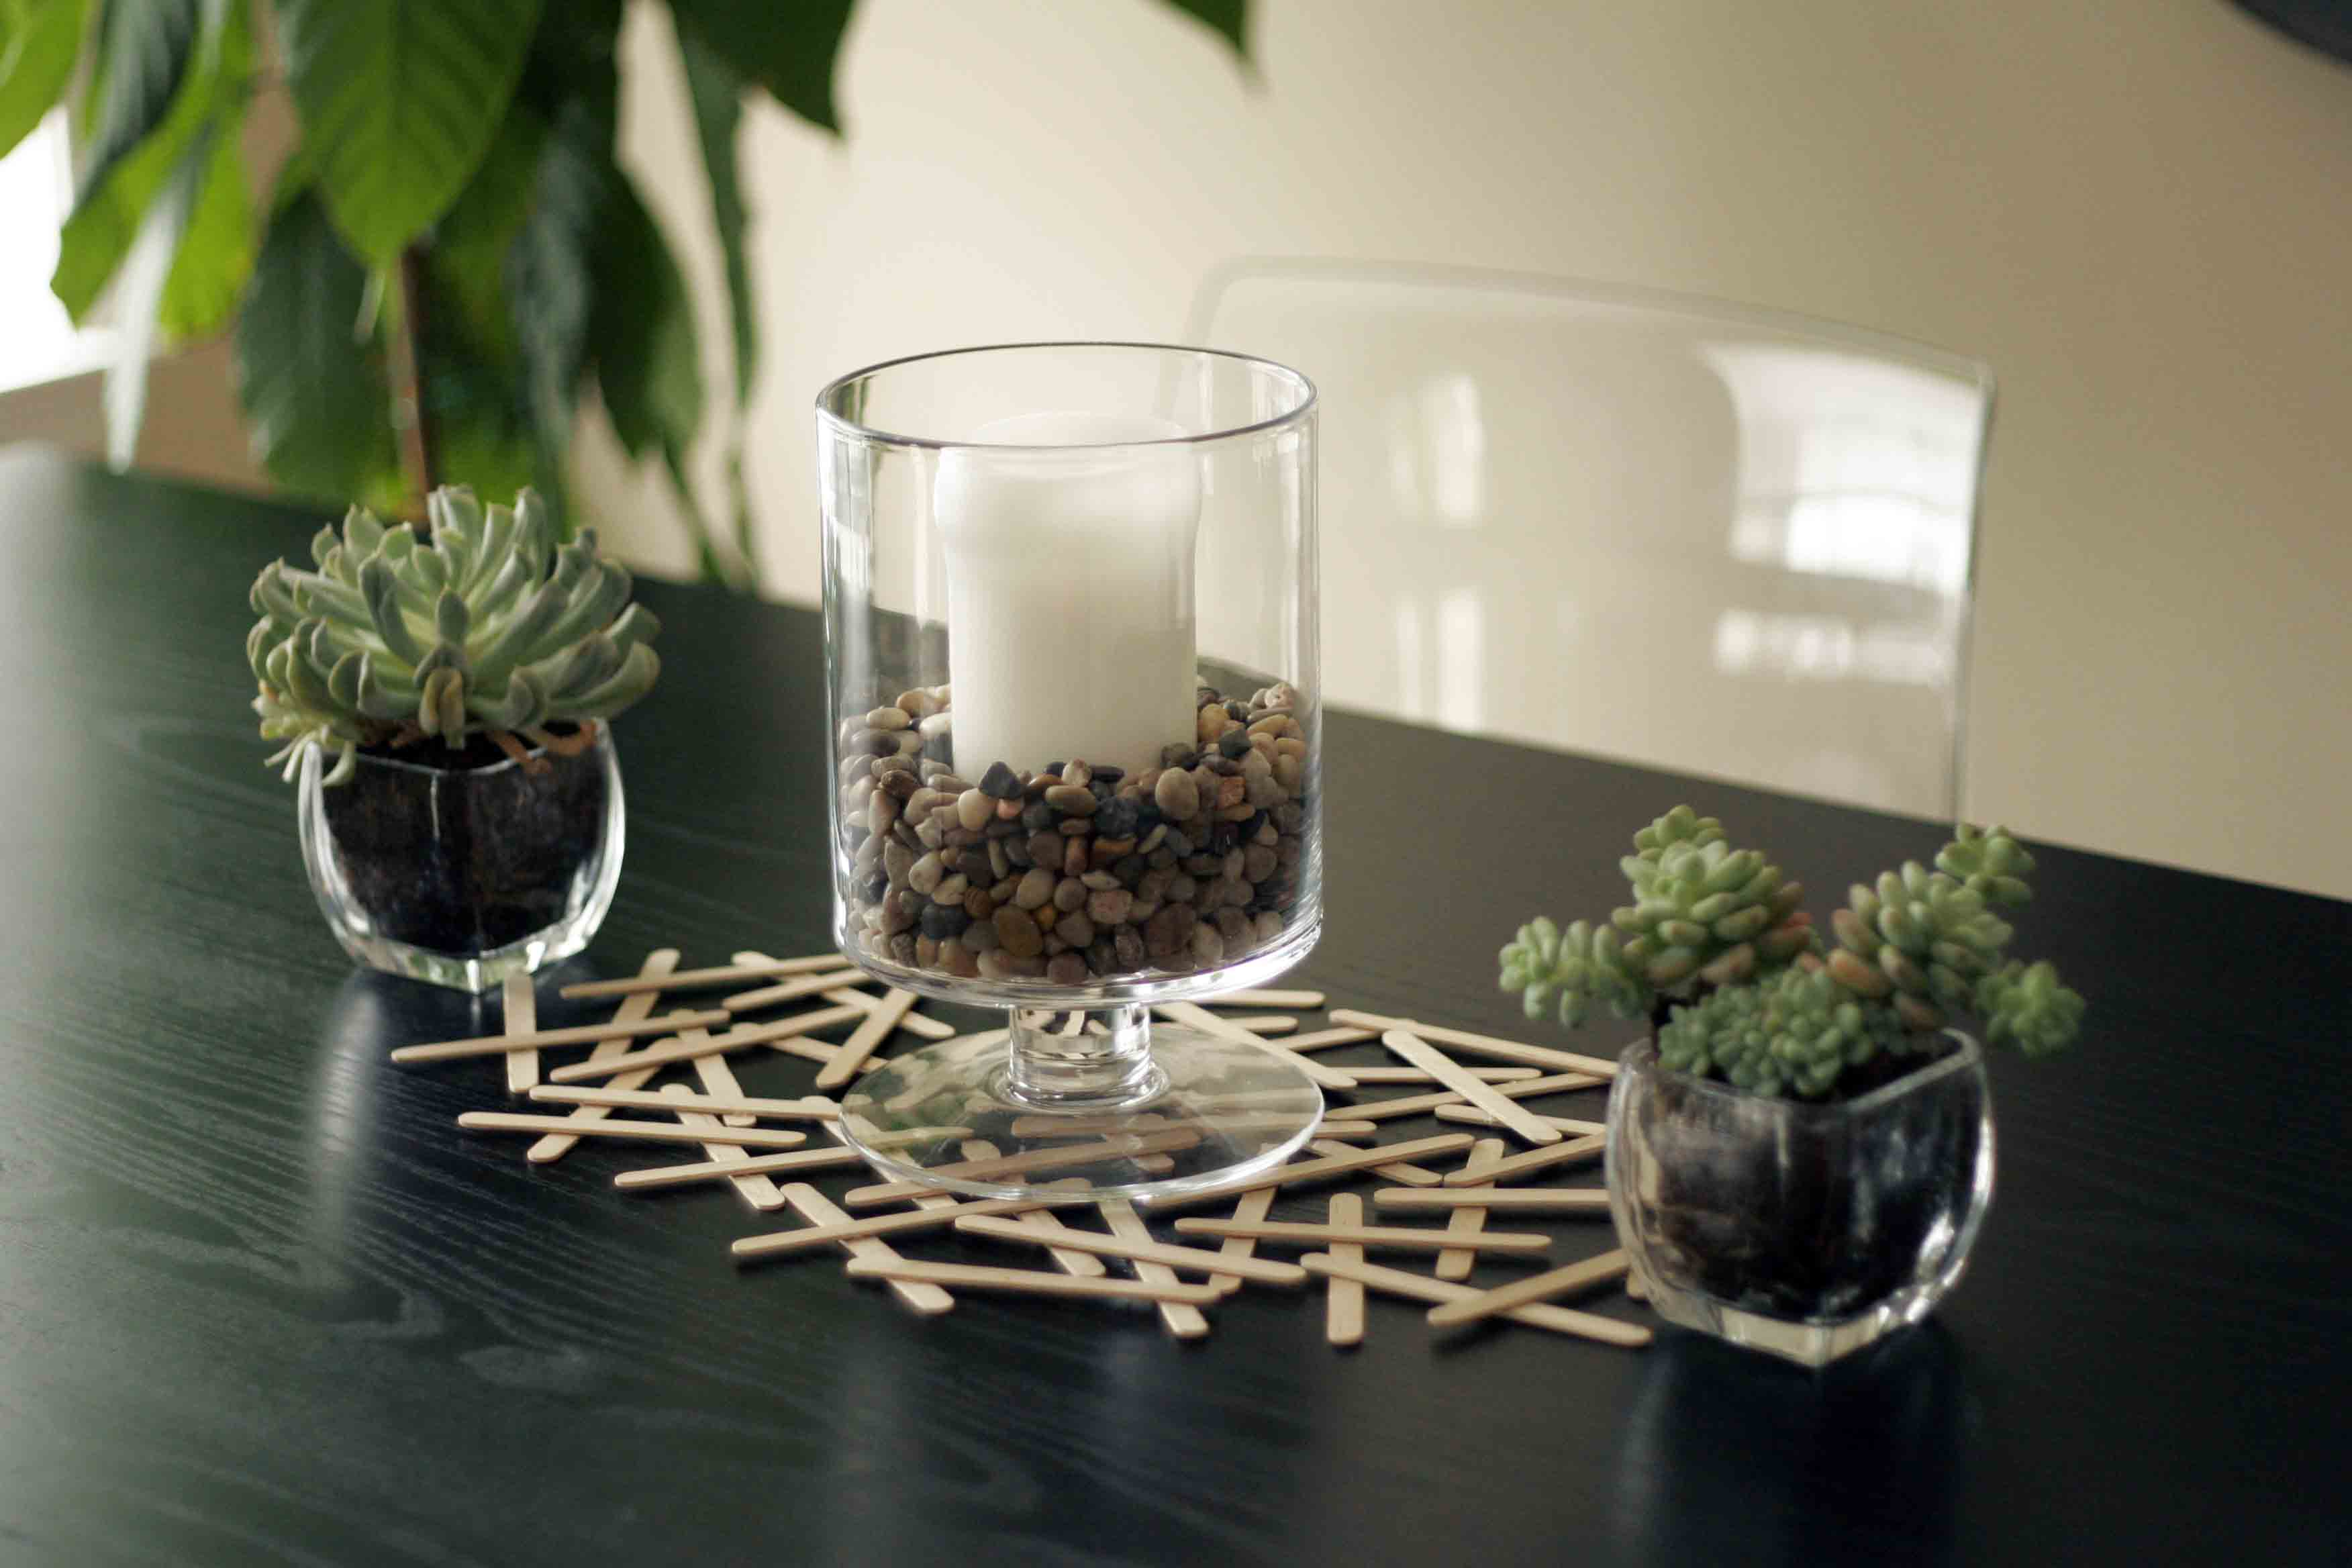 Decorate With Popsicle Sticks & 30 Innovative DIY Popsicle Ideas Youu0027ll Love u2013 Top Reveal